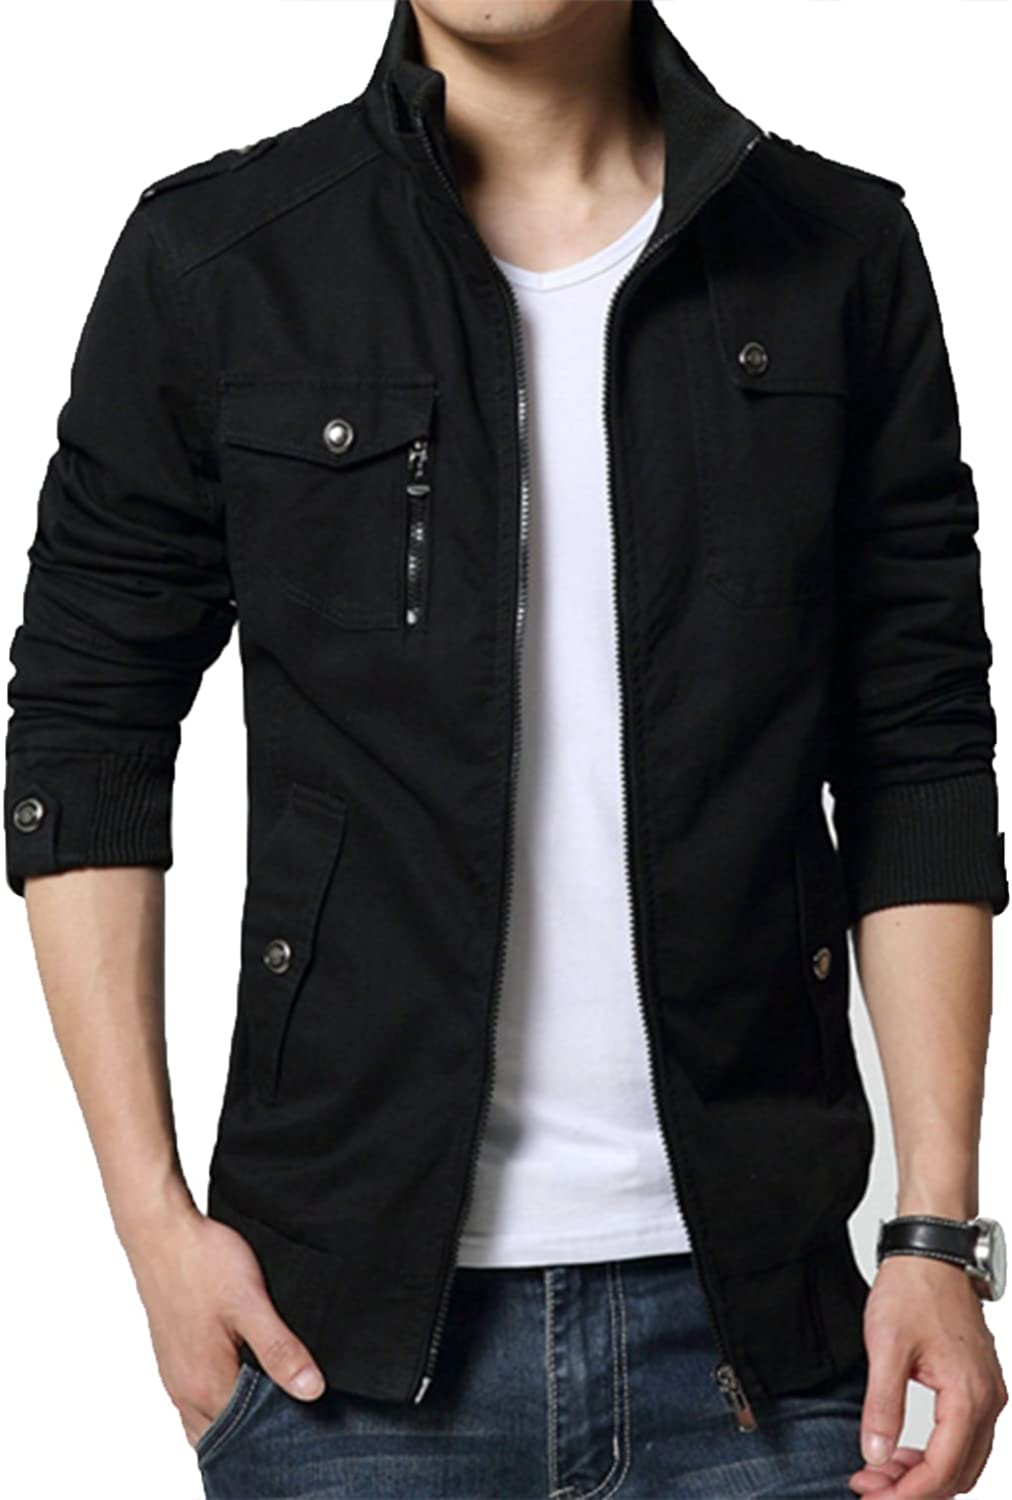 XueYin Men's Solid Cotton Casual Wear Stand Collar Jacket